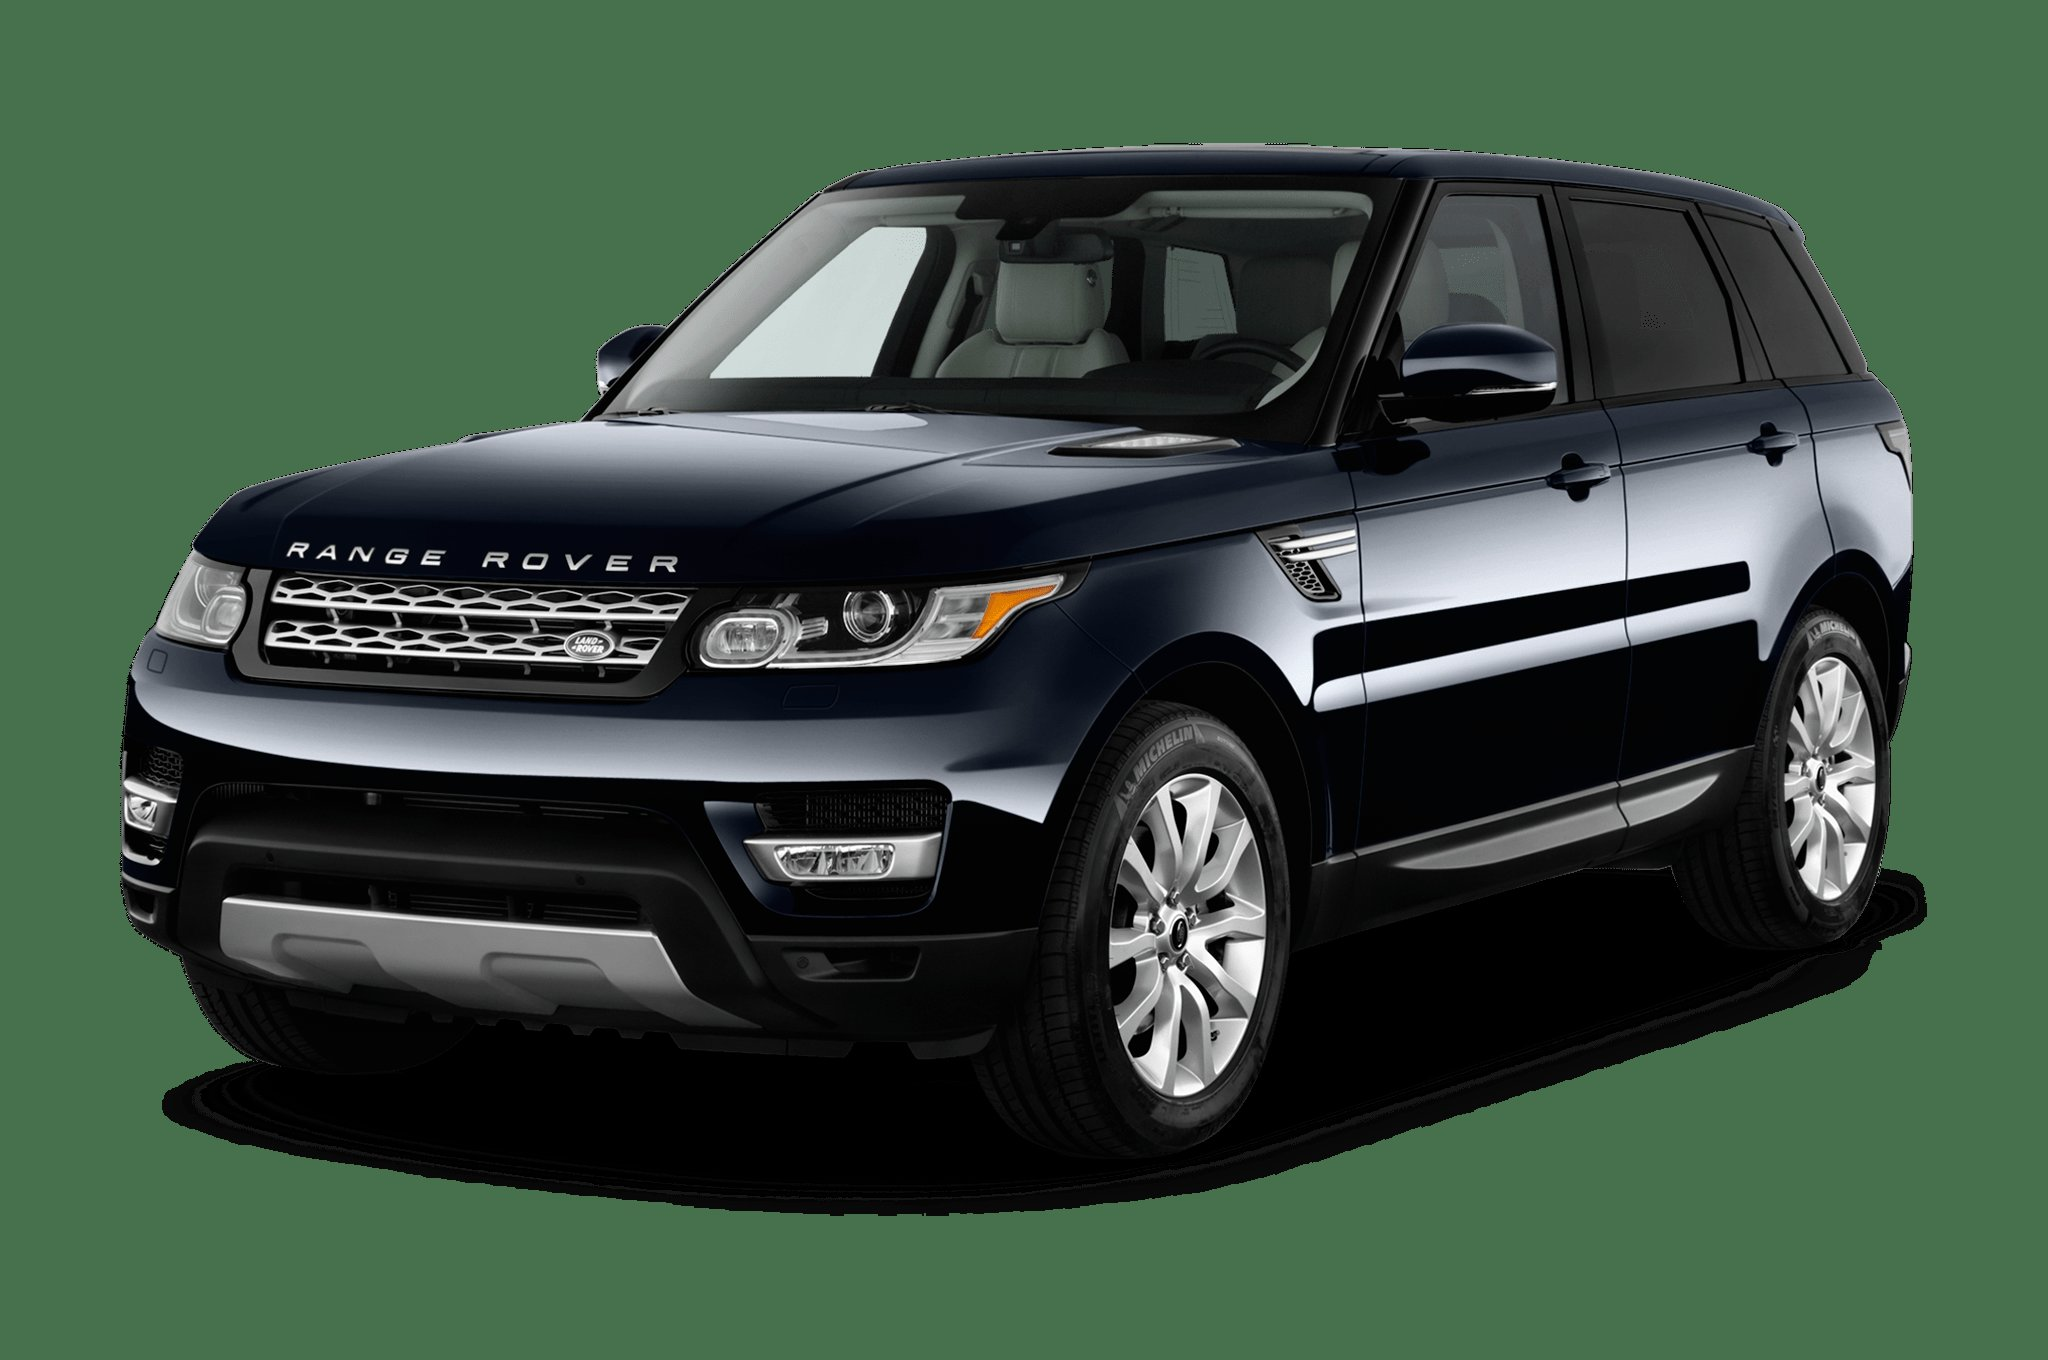 Latest One Week With 2016 Range Rover Sport Svr Automobile Free Download